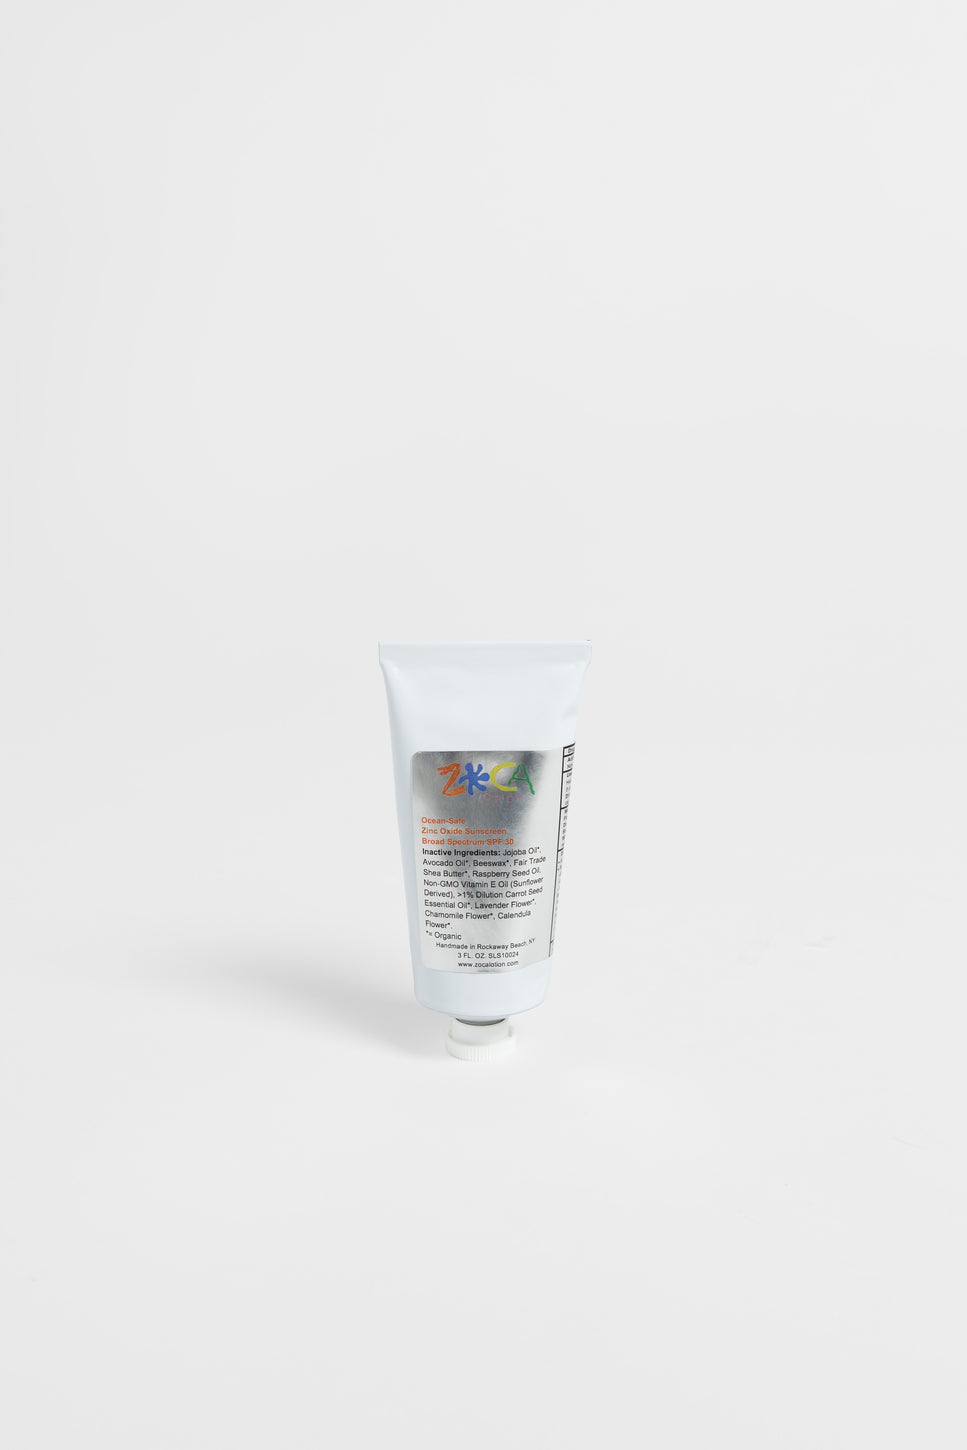 Zoca Lotion — SPF 36 Reef-Safe Zinc Oxide Sunscreen